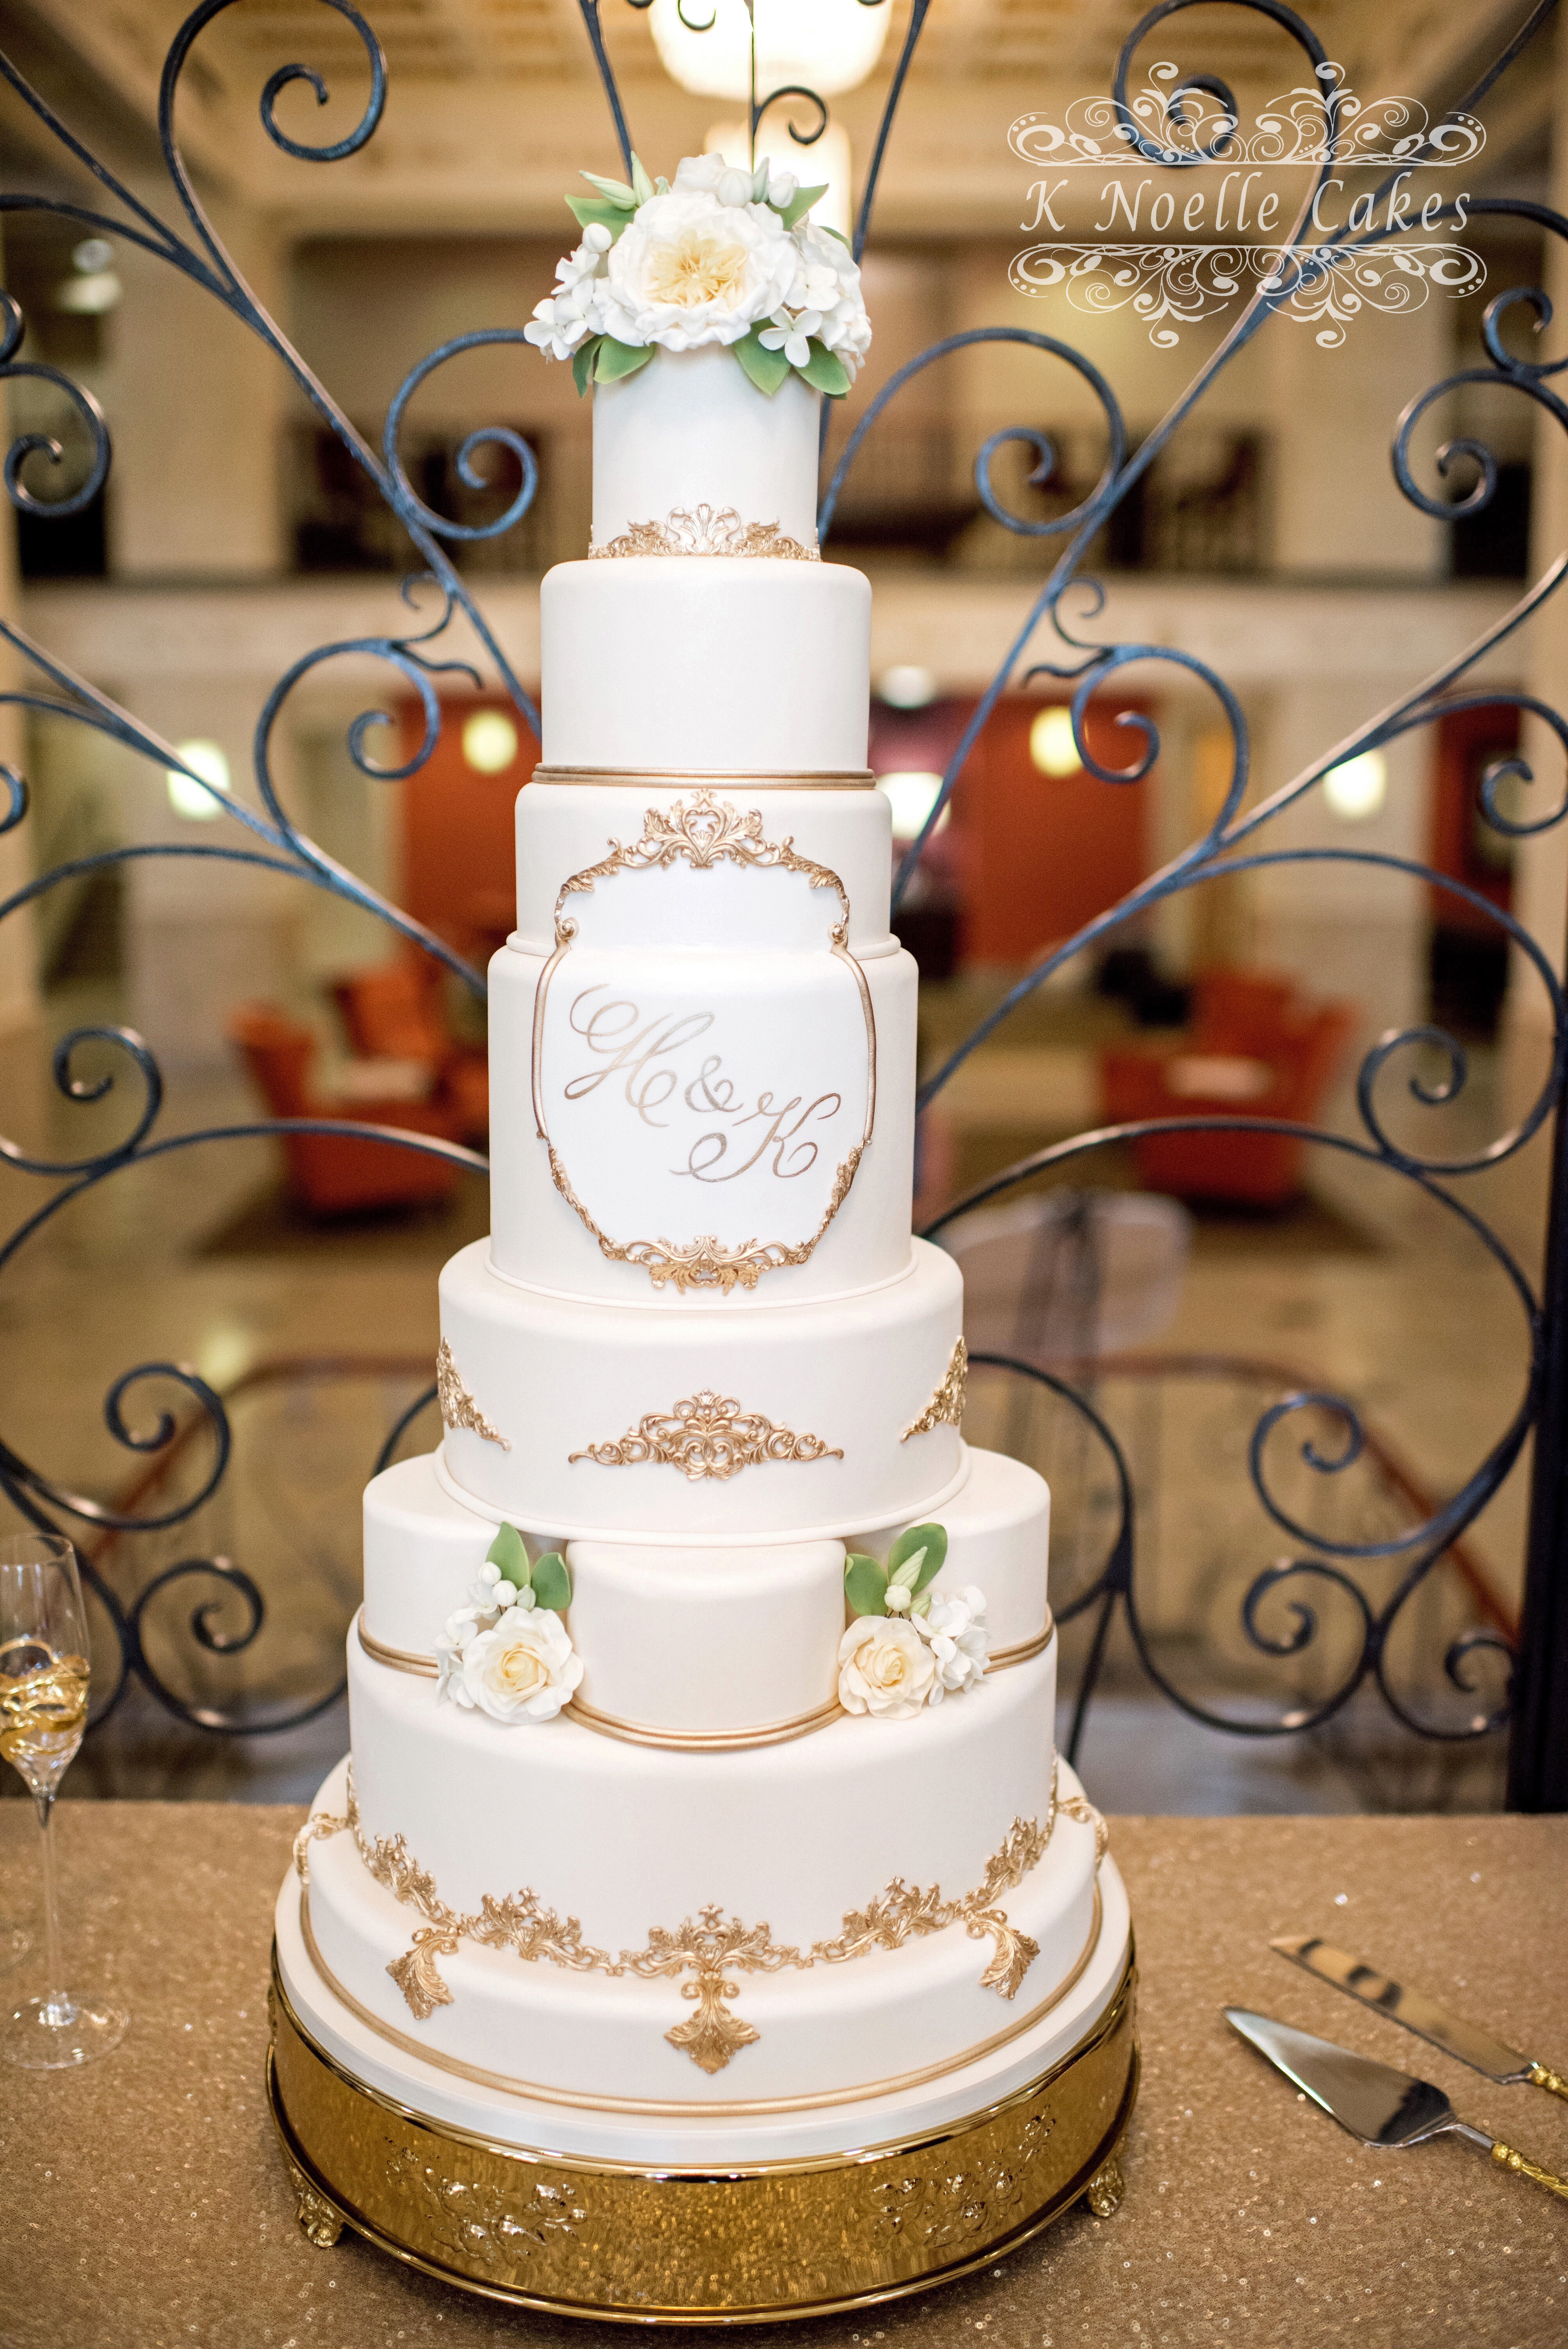 White wedding cake with gold detailing and sugar flowers